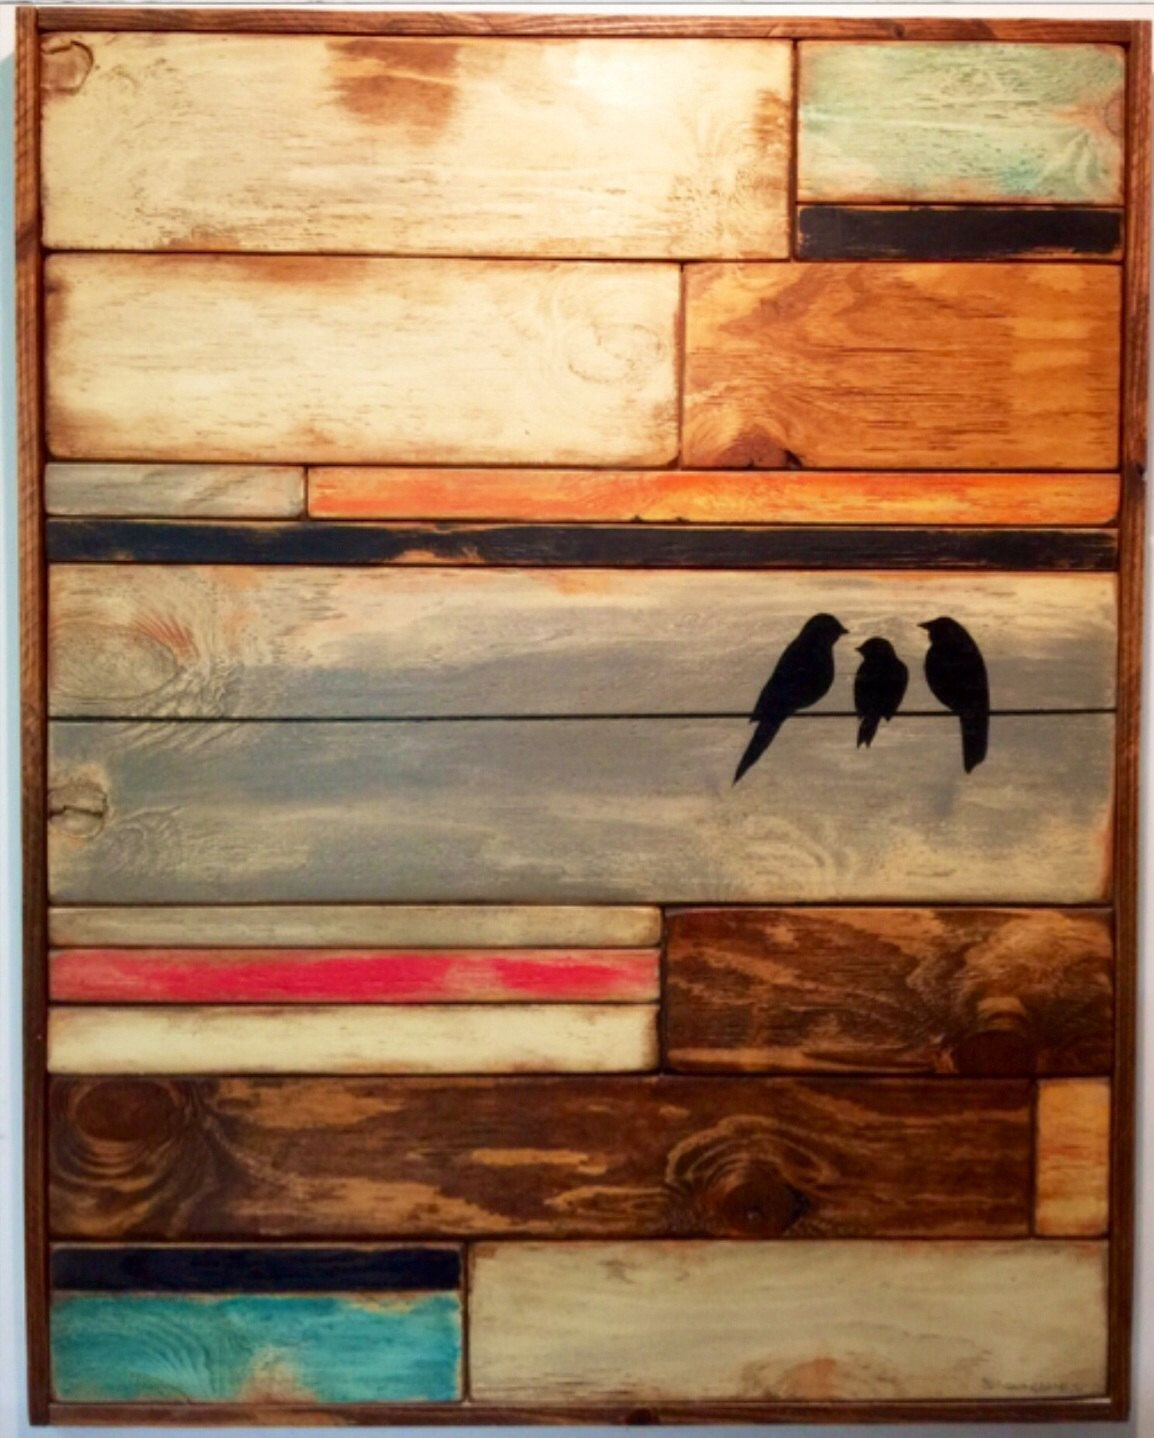 Large reclaimed wood wall arthome decor birds on wiredistressed